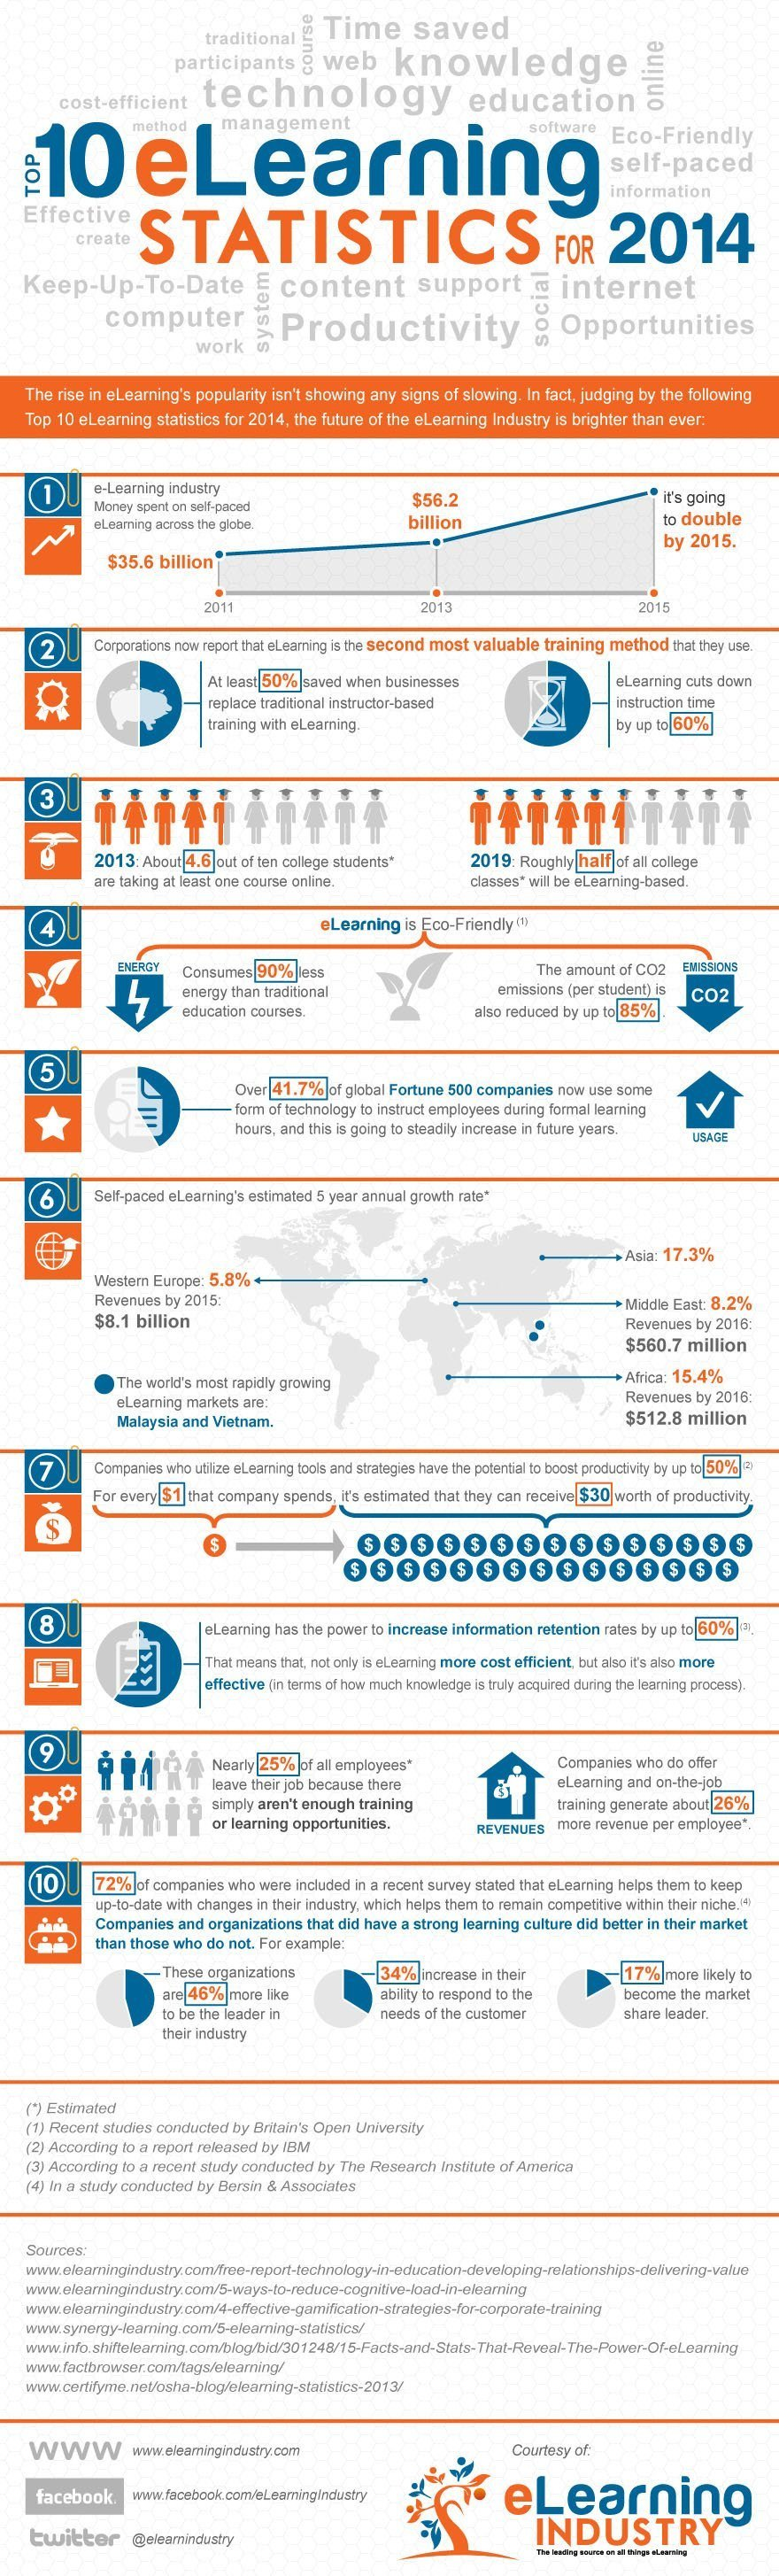 Top-10-eLearning-Statistics-for-2014-Infographic